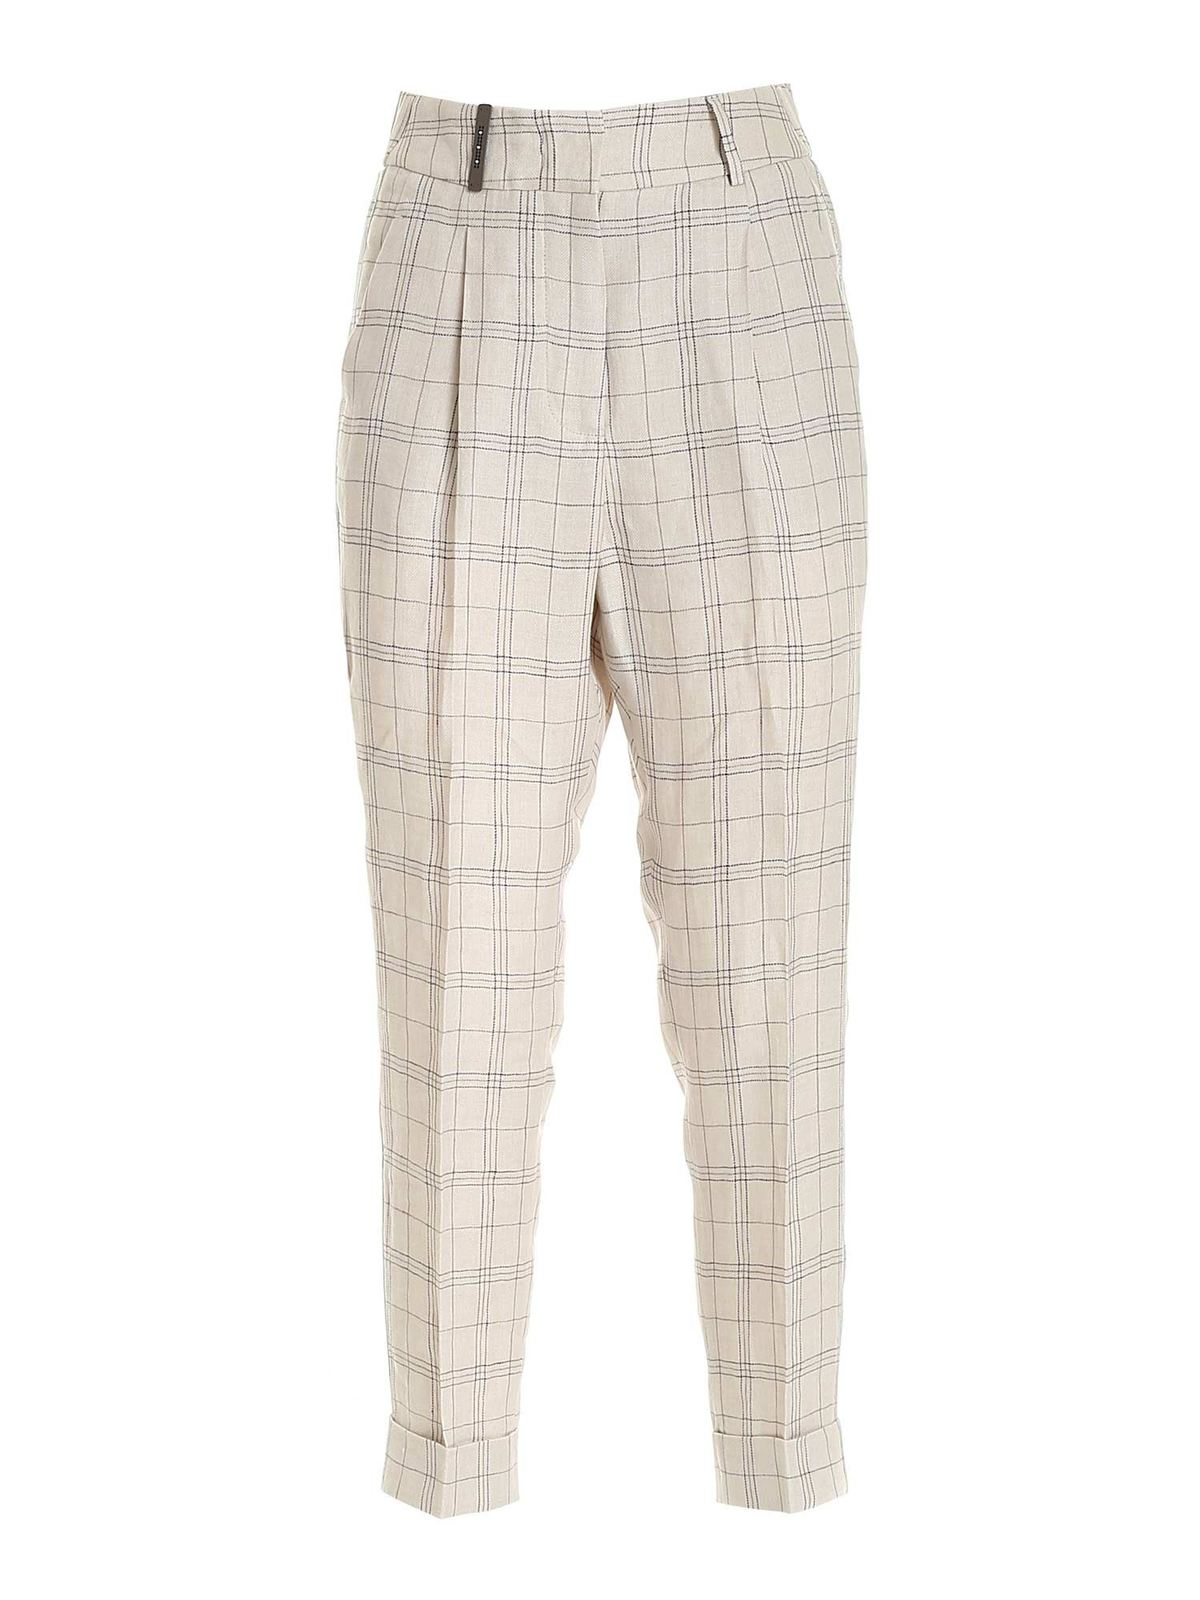 Peserico MICRO BEADS CHECKED PANTS IN BEIGE